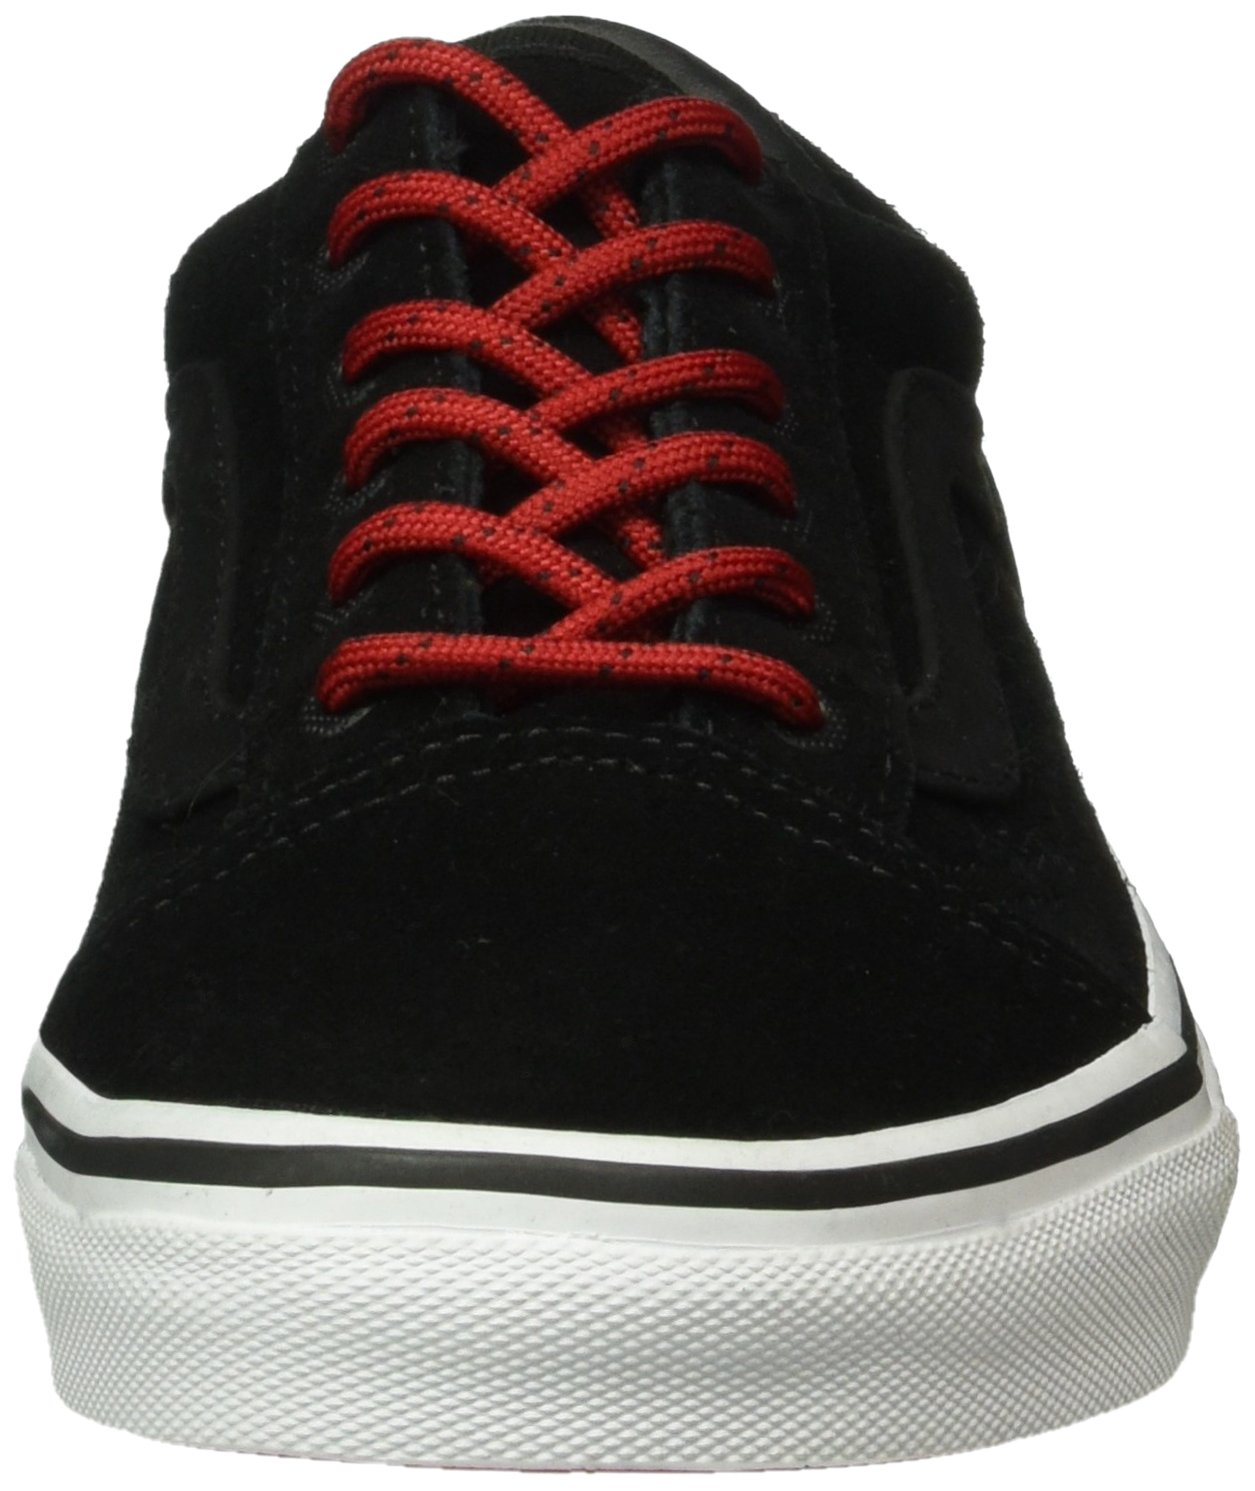 f90097a93f Vans Unisex Kids  K Old Skool Low-Top Sneakers